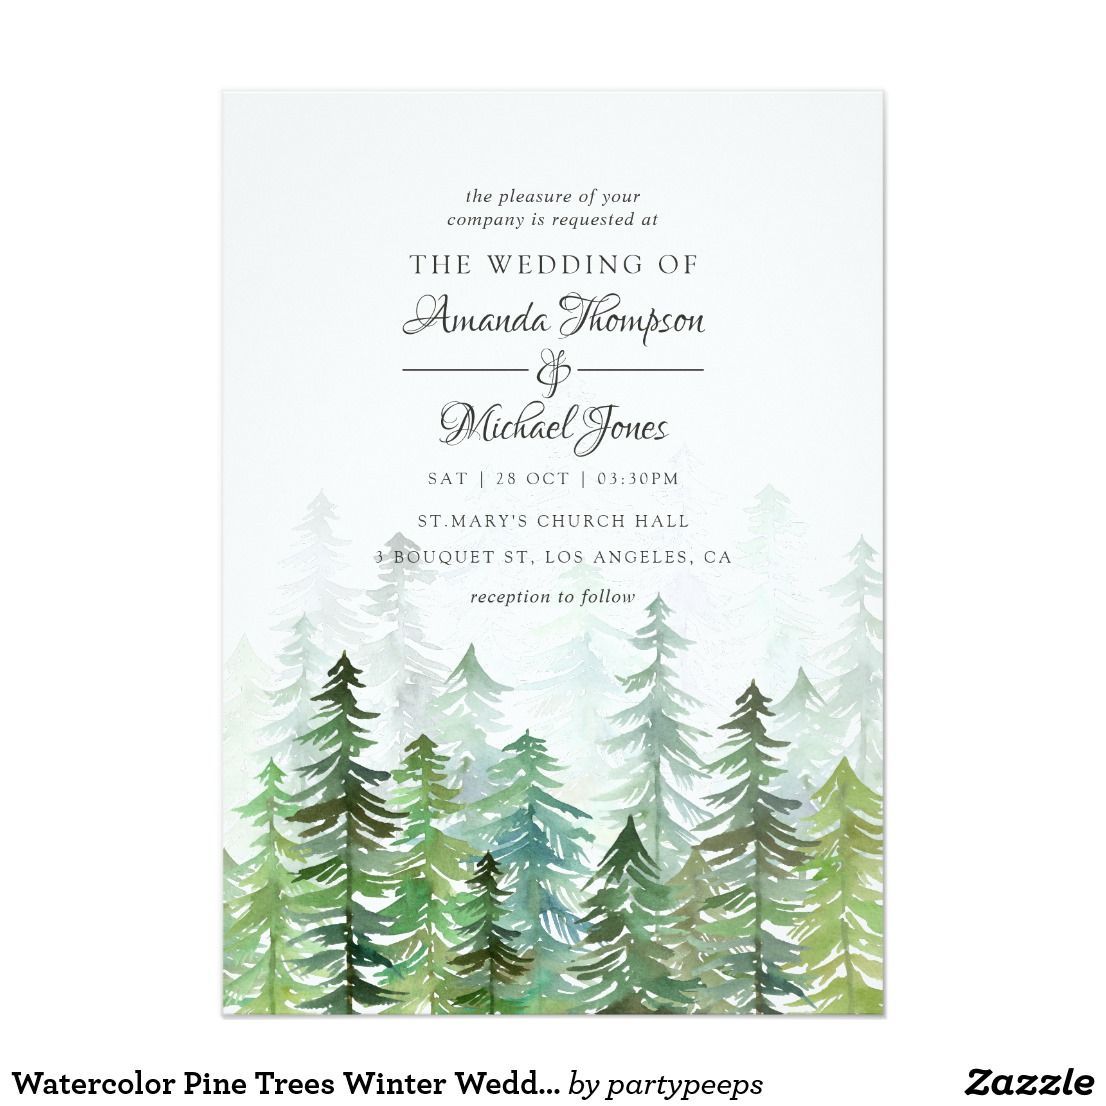 Watercolor Pine Trees Winter Wedding Invitation Zazzle Com